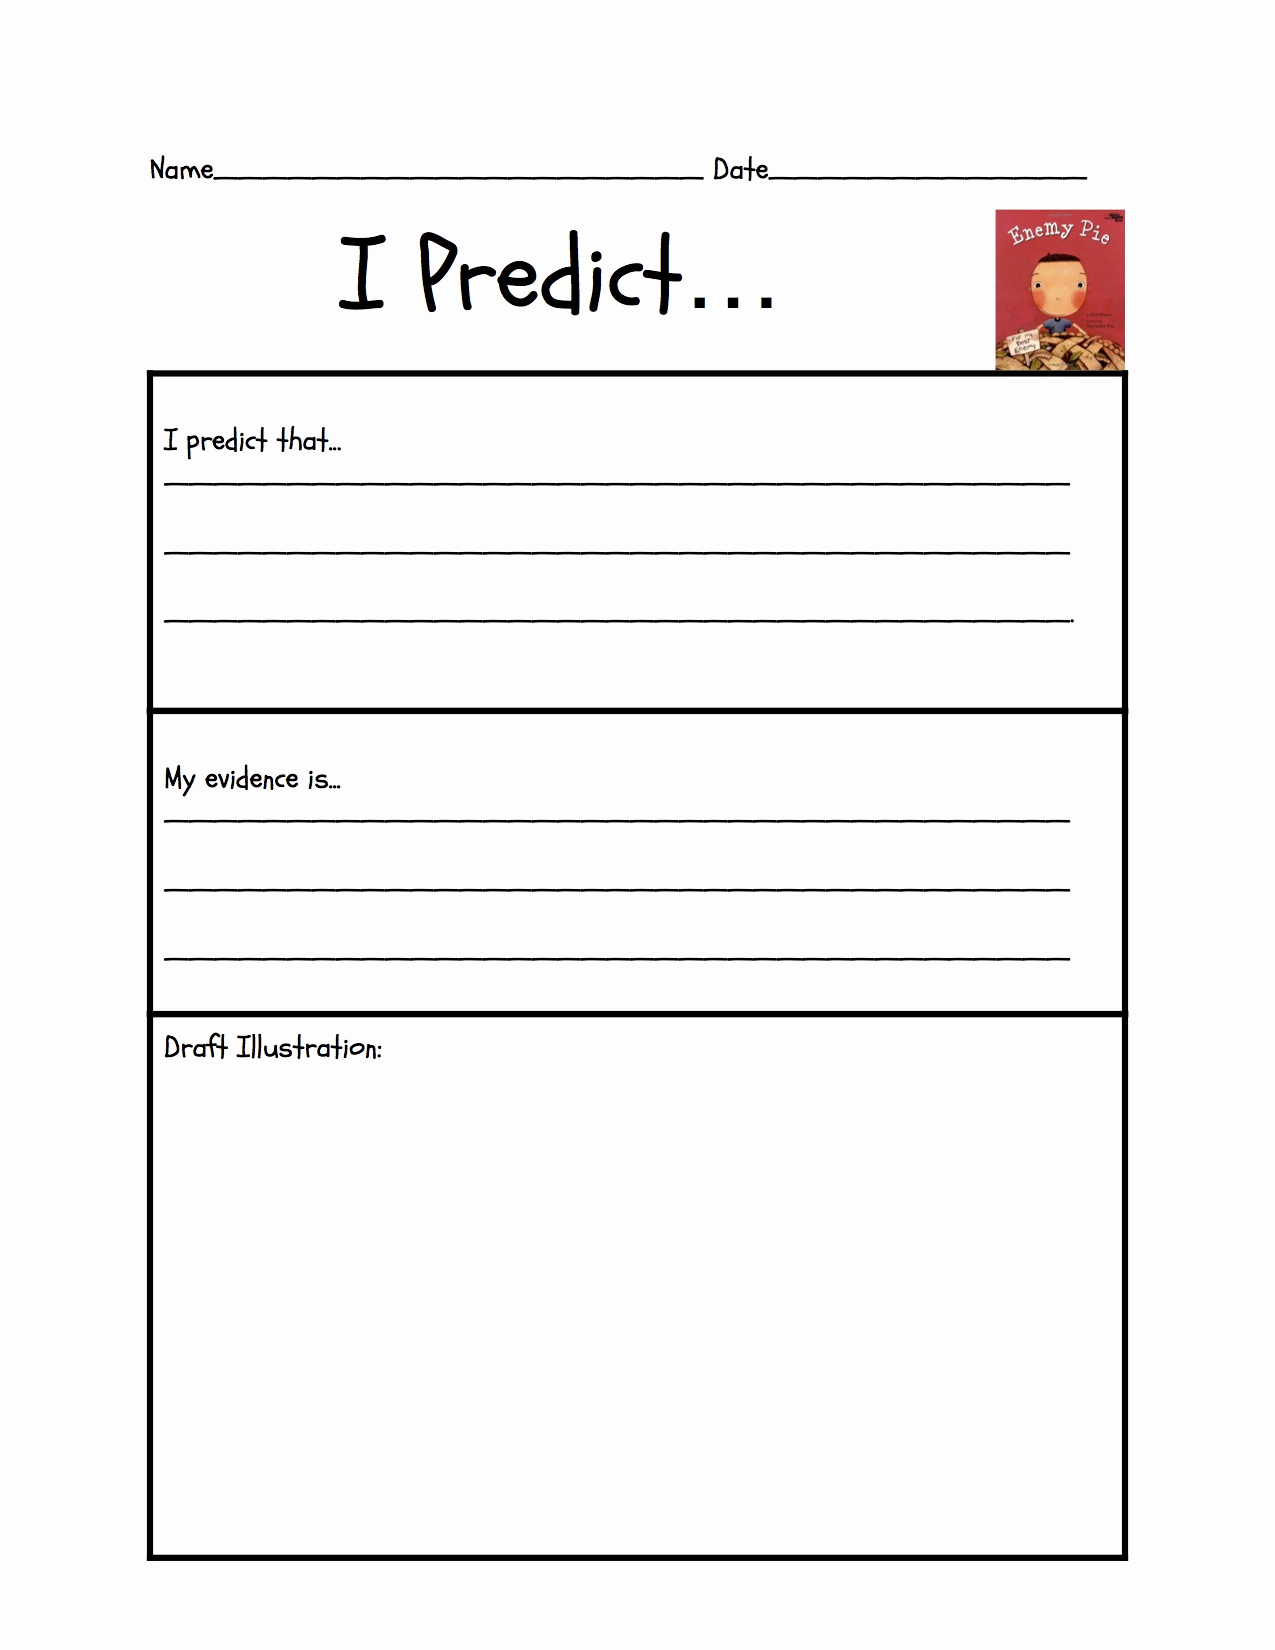 Prediction Worksheets for 3rd Grade New 20 Prediction Worksheets for 3rd Grade